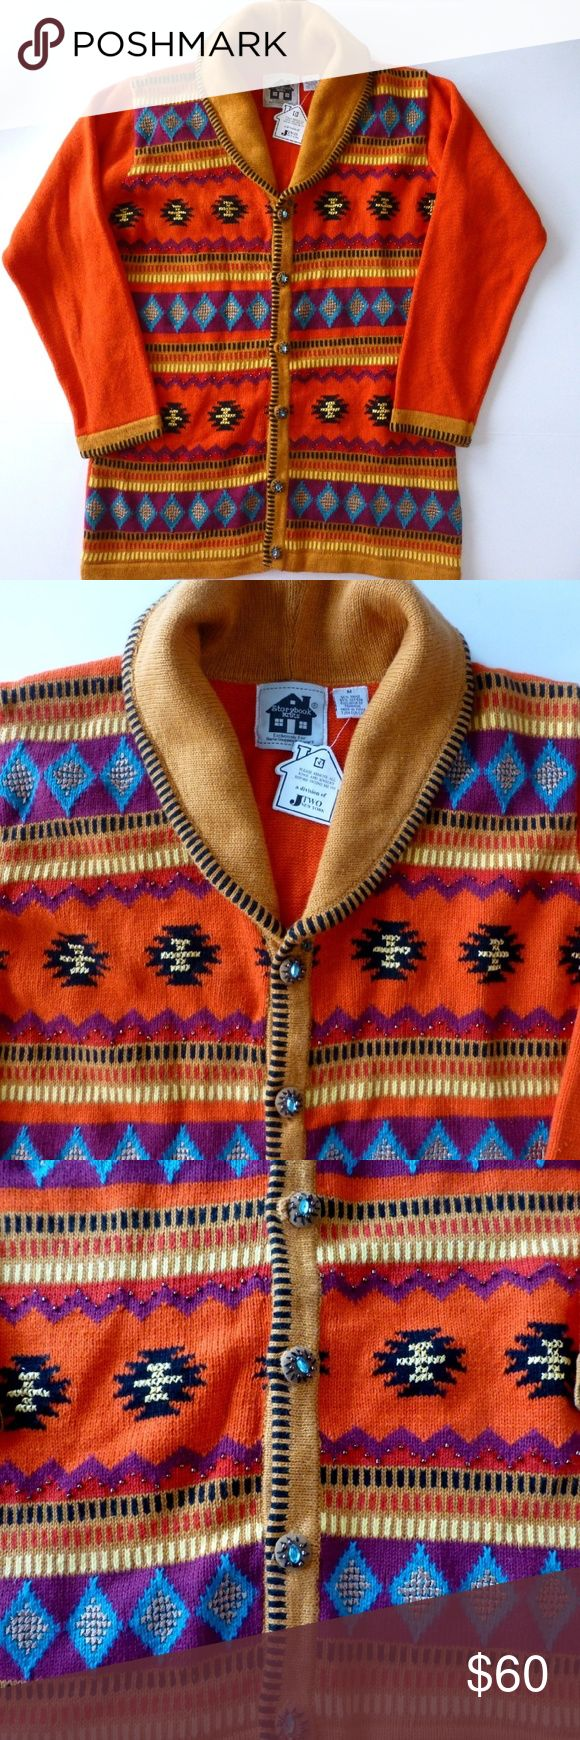 "Storybook Knits Sundance Southwestern cardigan NWT Vibrant Southwest colors Shawl collar Specialty buttons 55% ramie 45% cotton Hand wash, dry flat 21.75"" armpit to armpit 28.5"" from back of neck to hem New with tag Storybook Knits  Sweaters Cardigans"